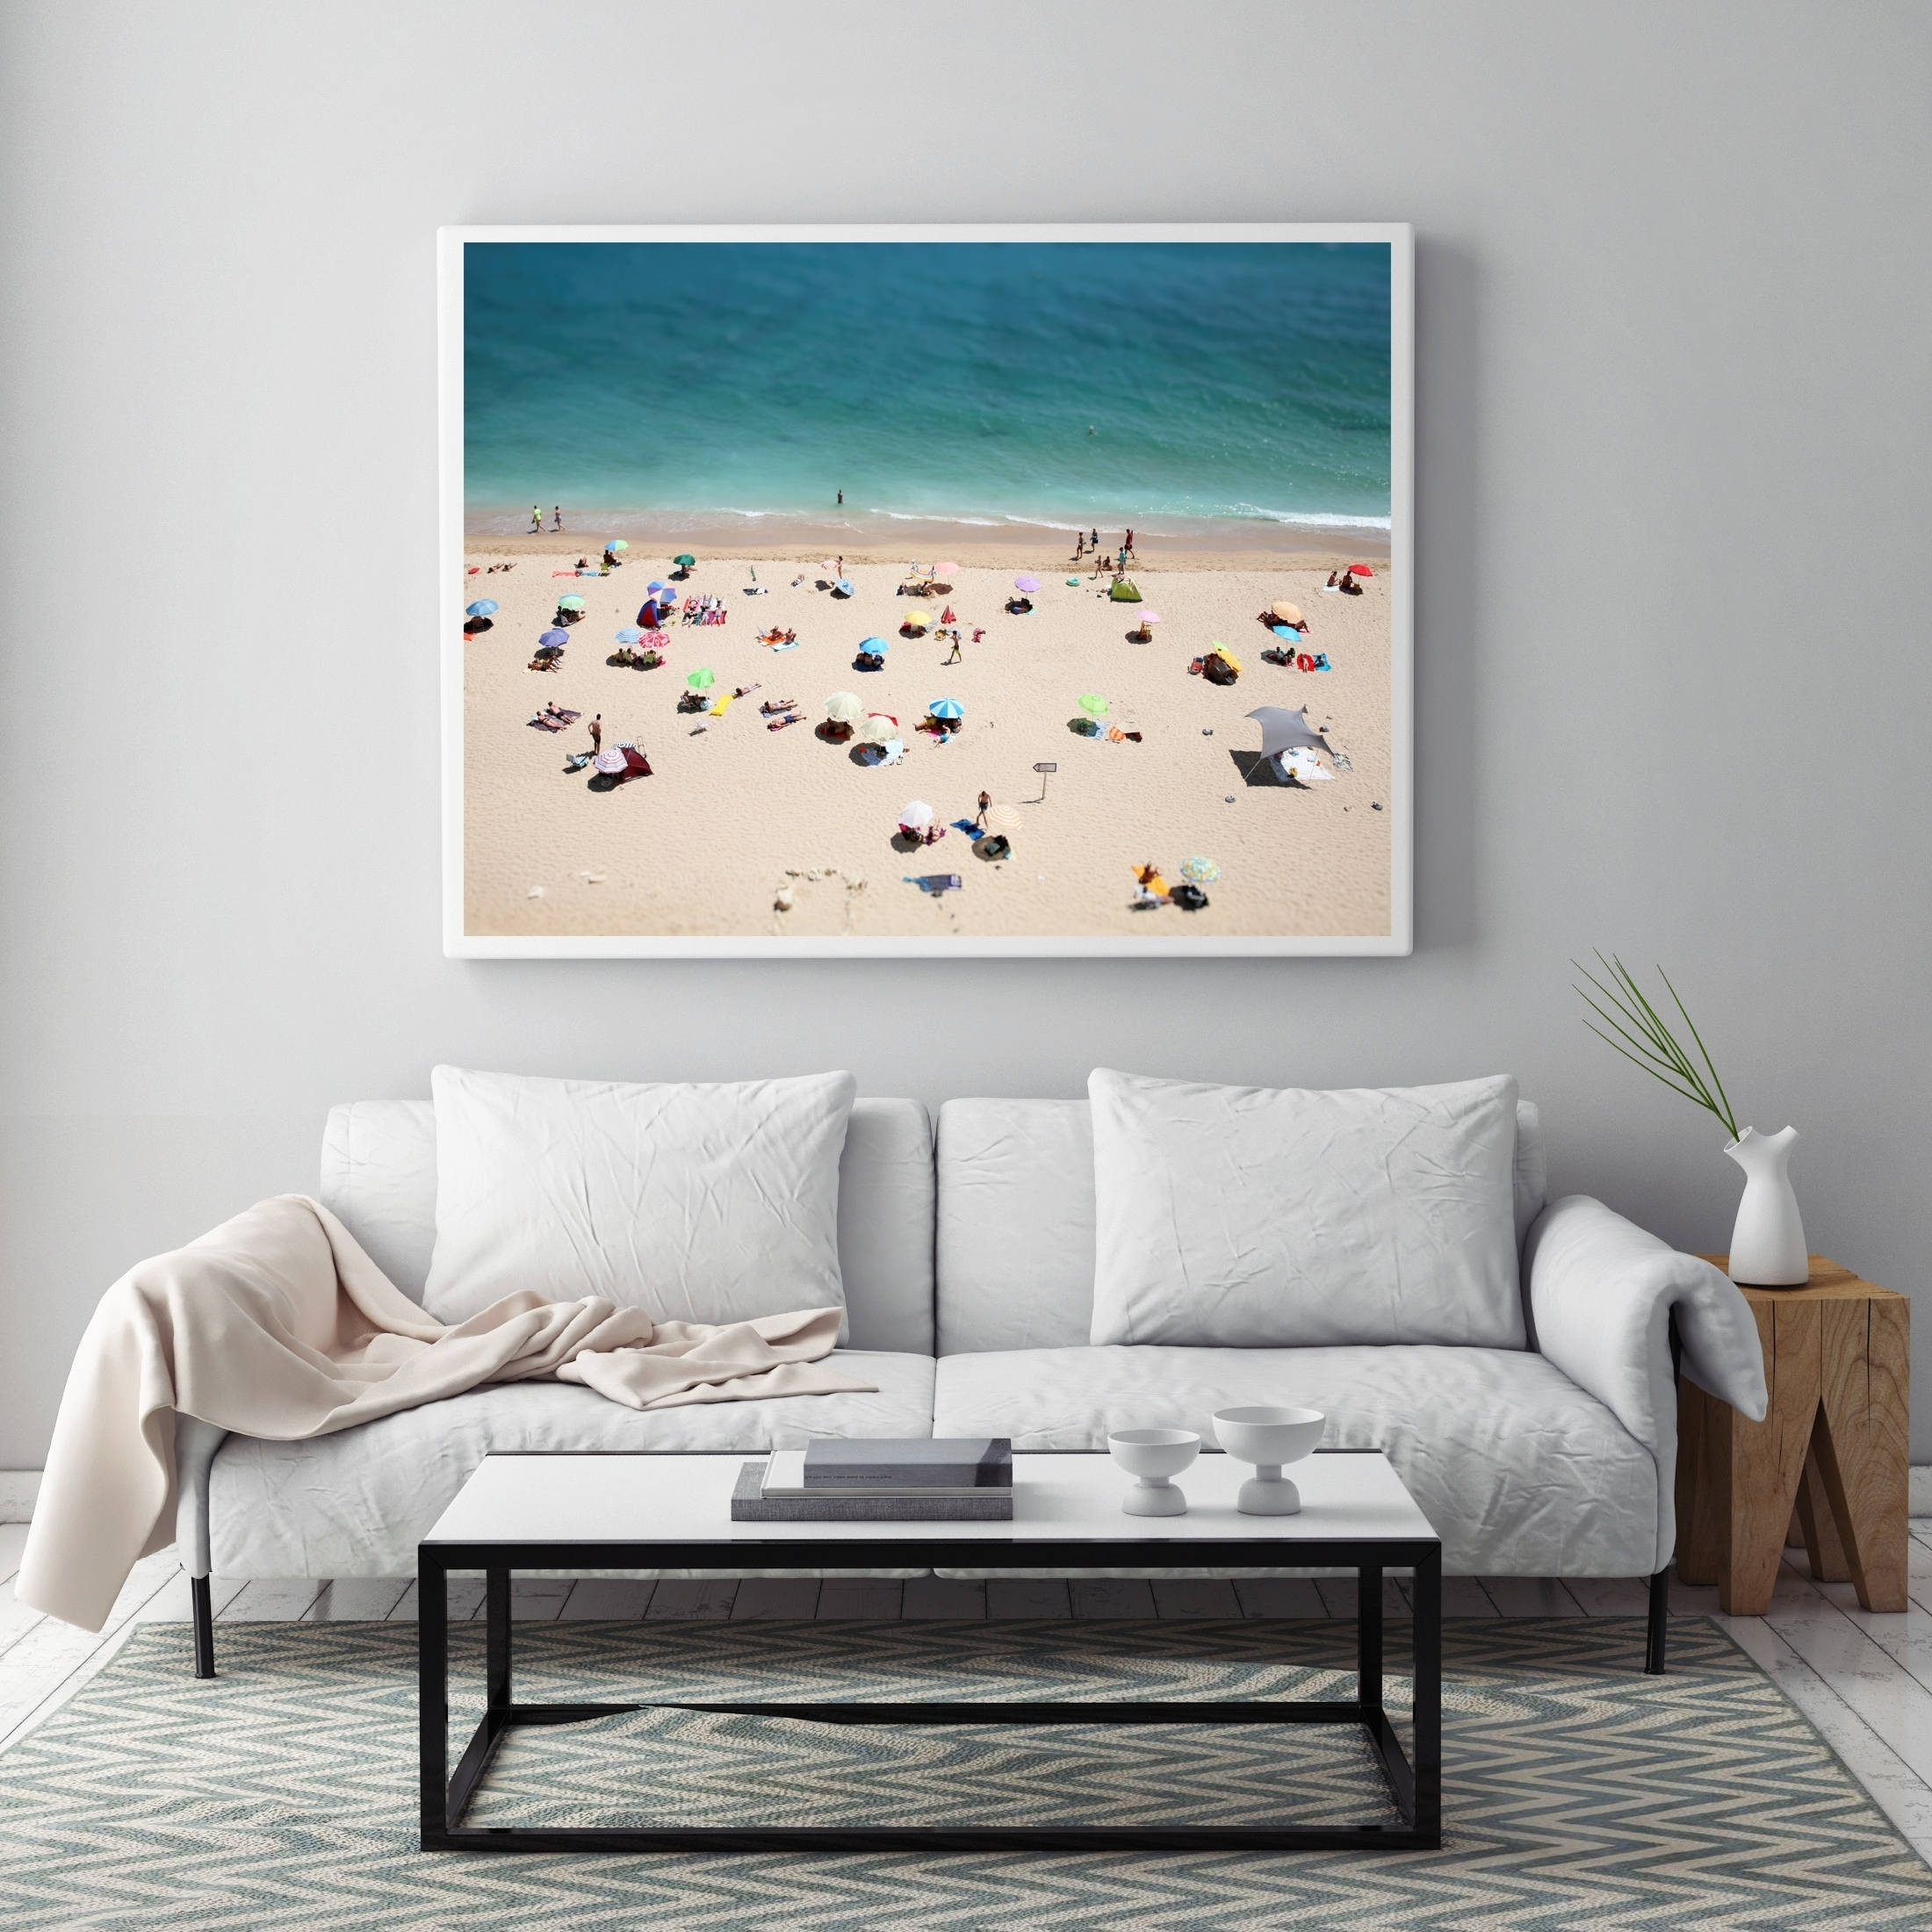 Widely Used Large Coastal Wall Art Intended For 31 Best Of Large Coastal Wall Art (View 4 of 15)